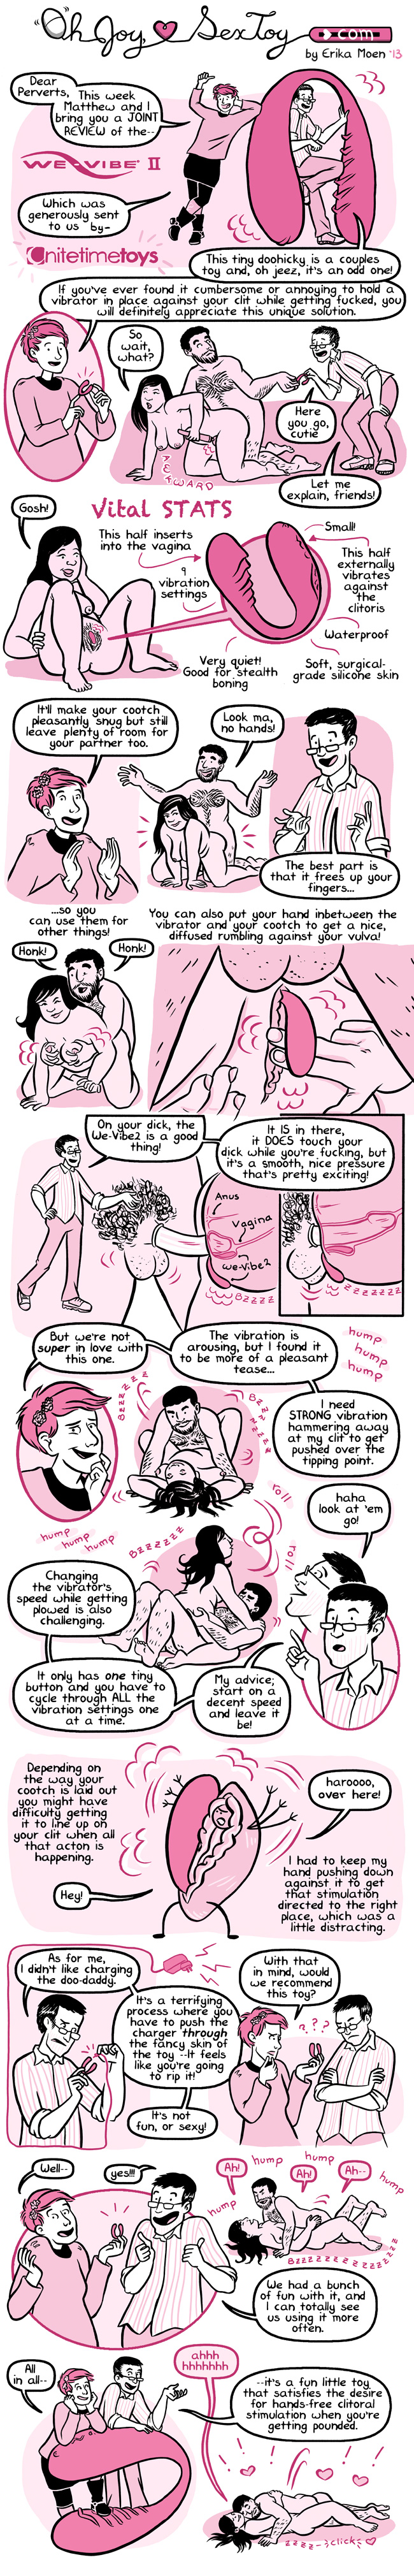 Oh Joy Sex Toy comic